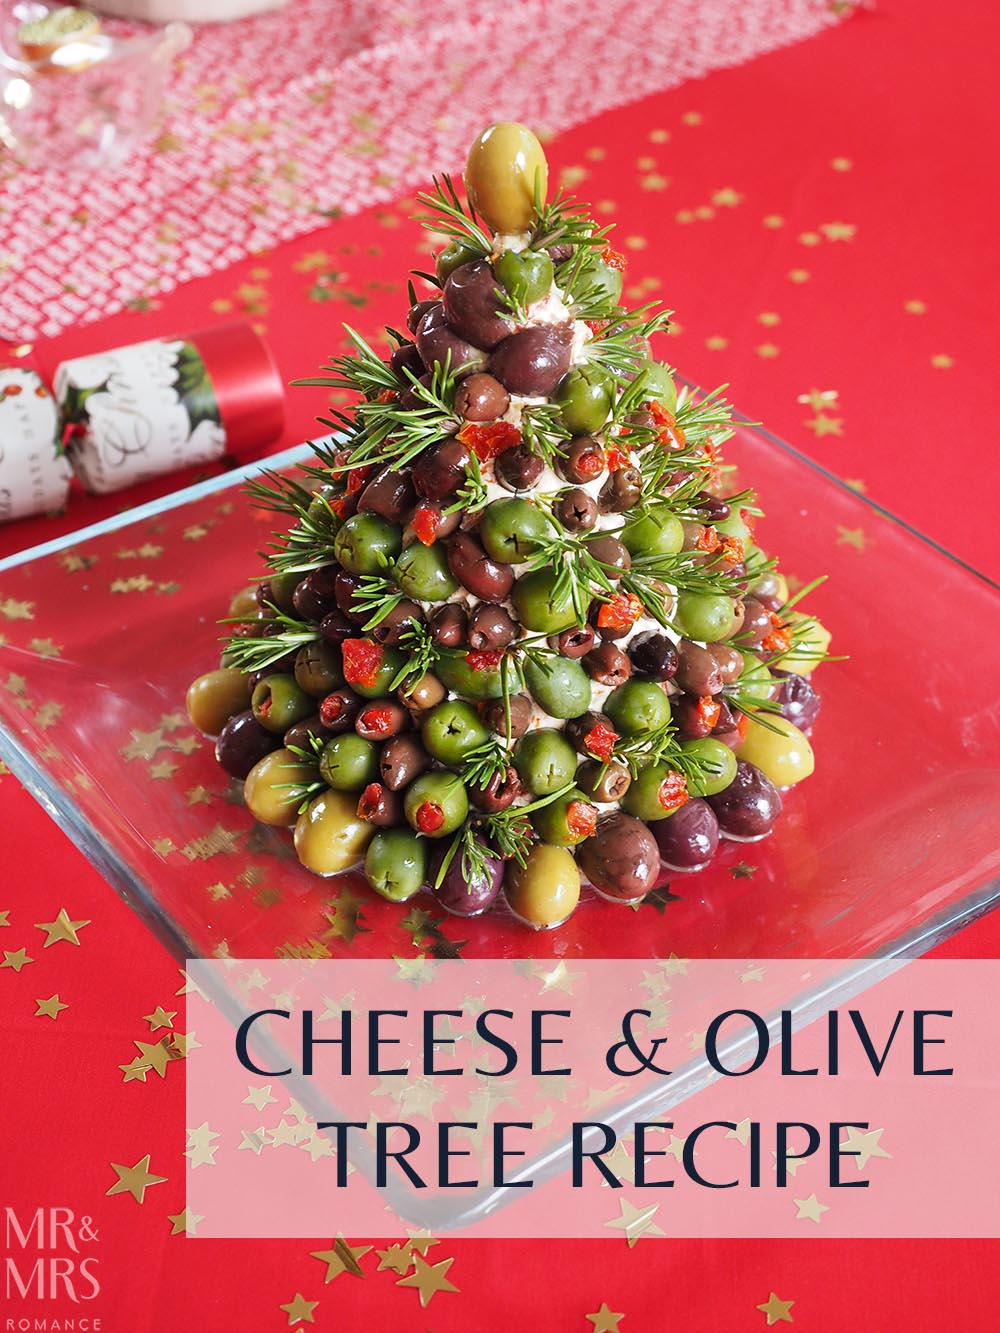 The Ultimate Cheese And Olive Christmas Tree Recipe Mmrmr And Mrs Romance